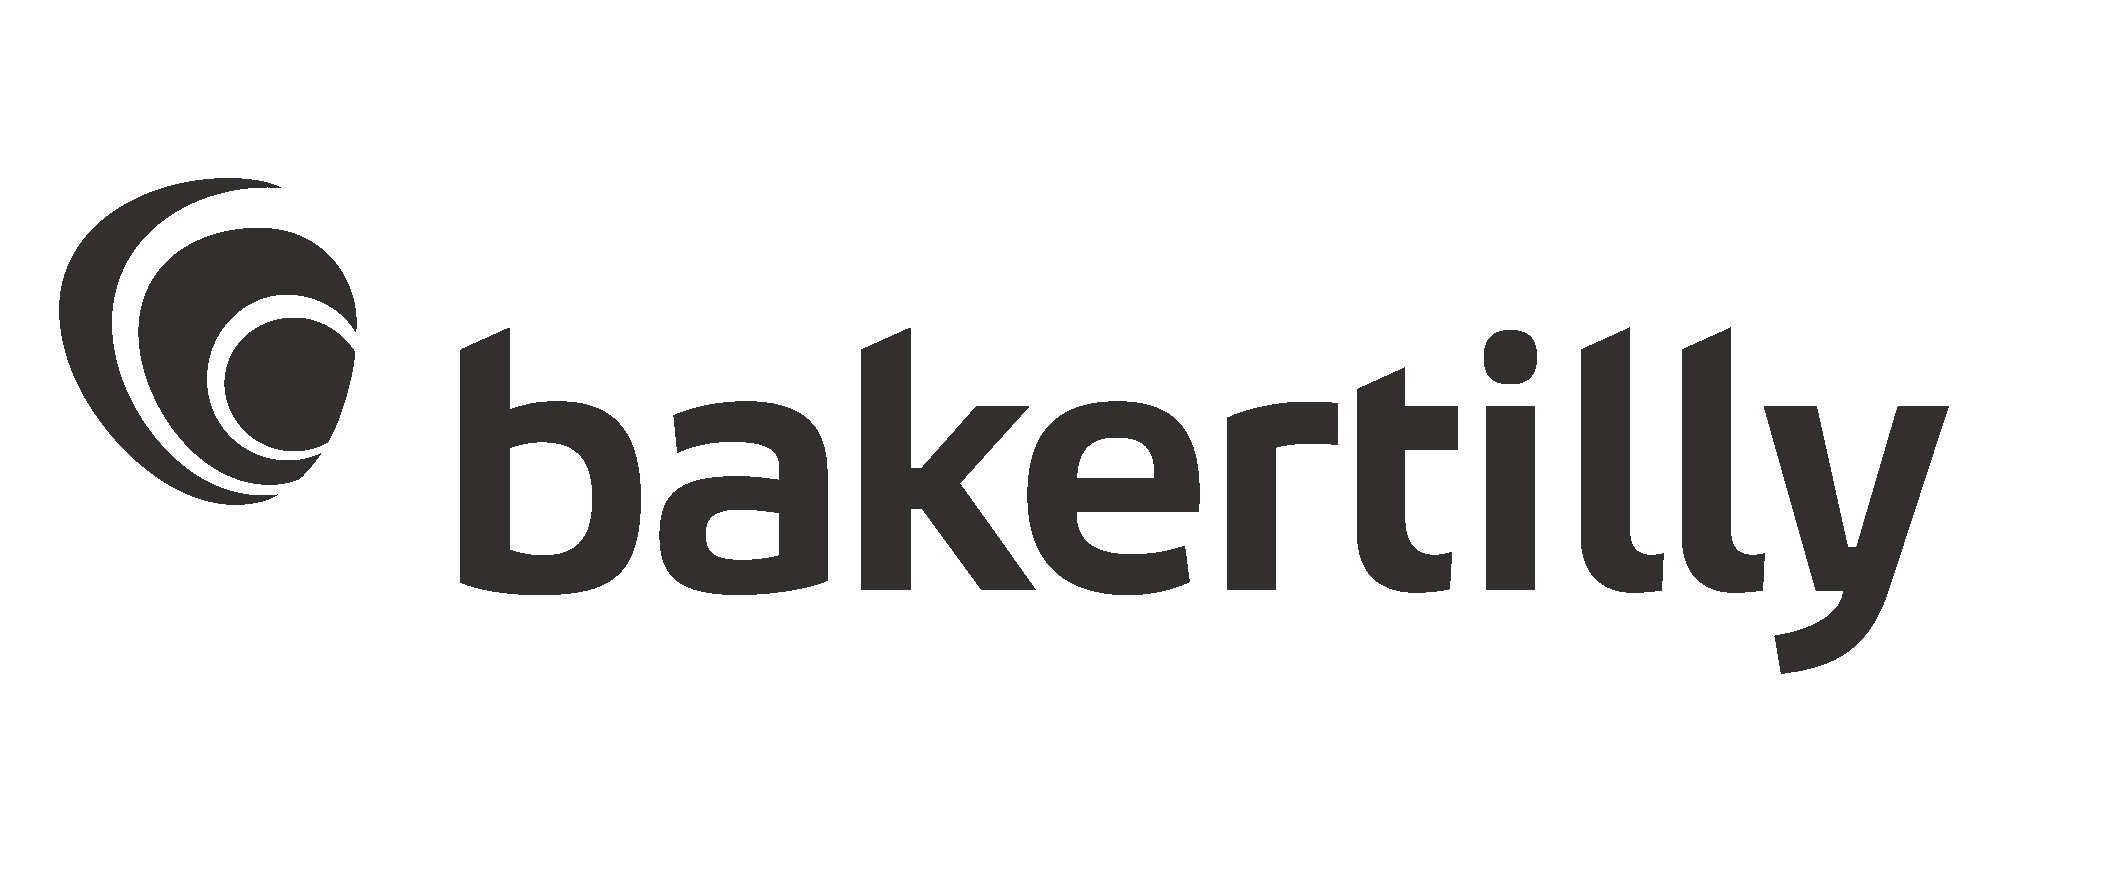 The global network of Baker Tilly International - The TPA Group